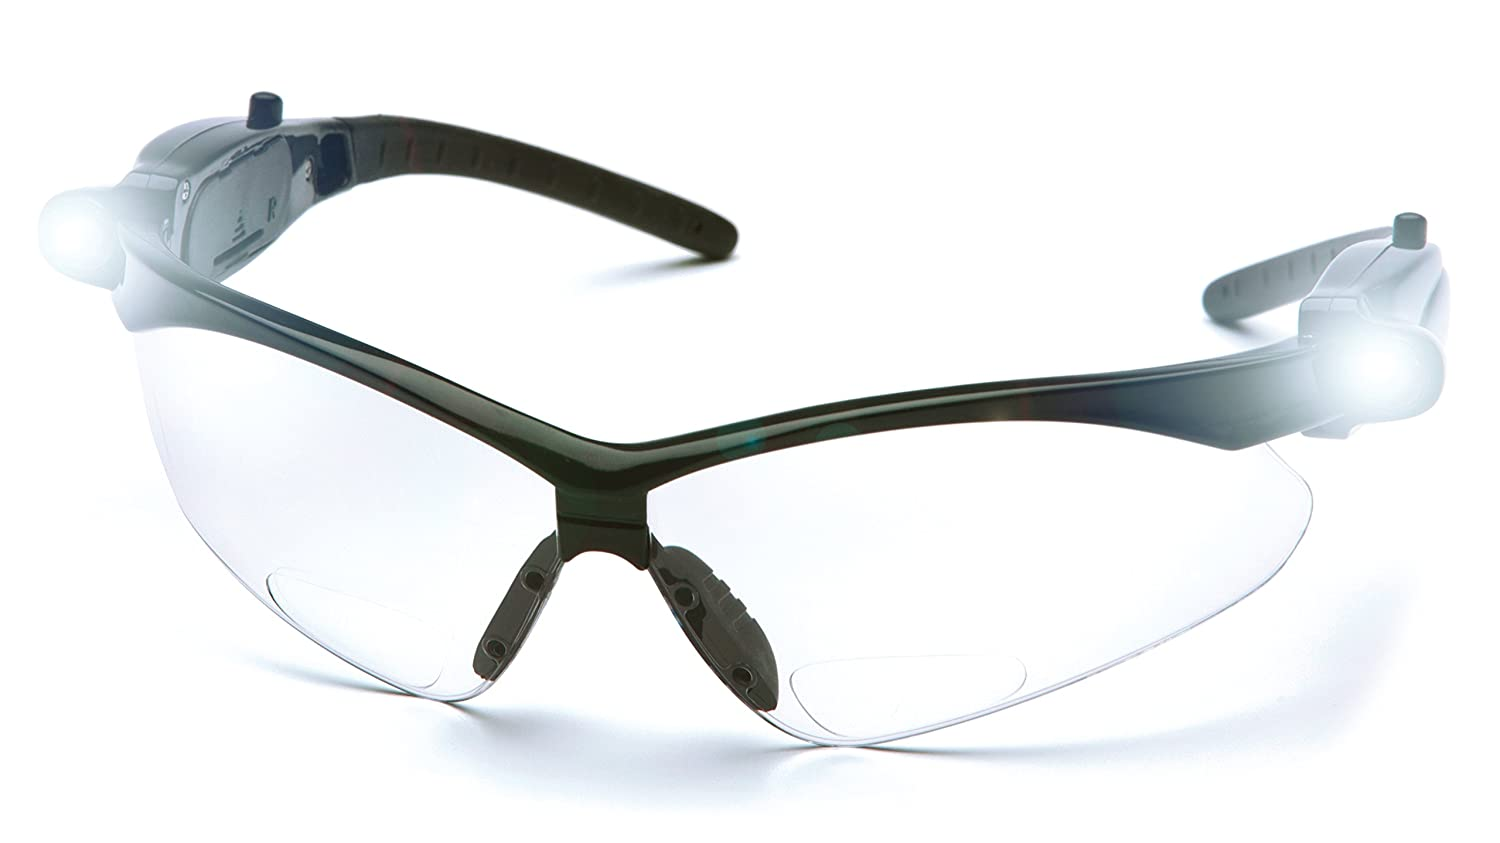 Pyramex PMXTREME Readers Bifocal Safety Glasses Eye Protection, Clear +2.0 Bifocal Lens, LED Temples